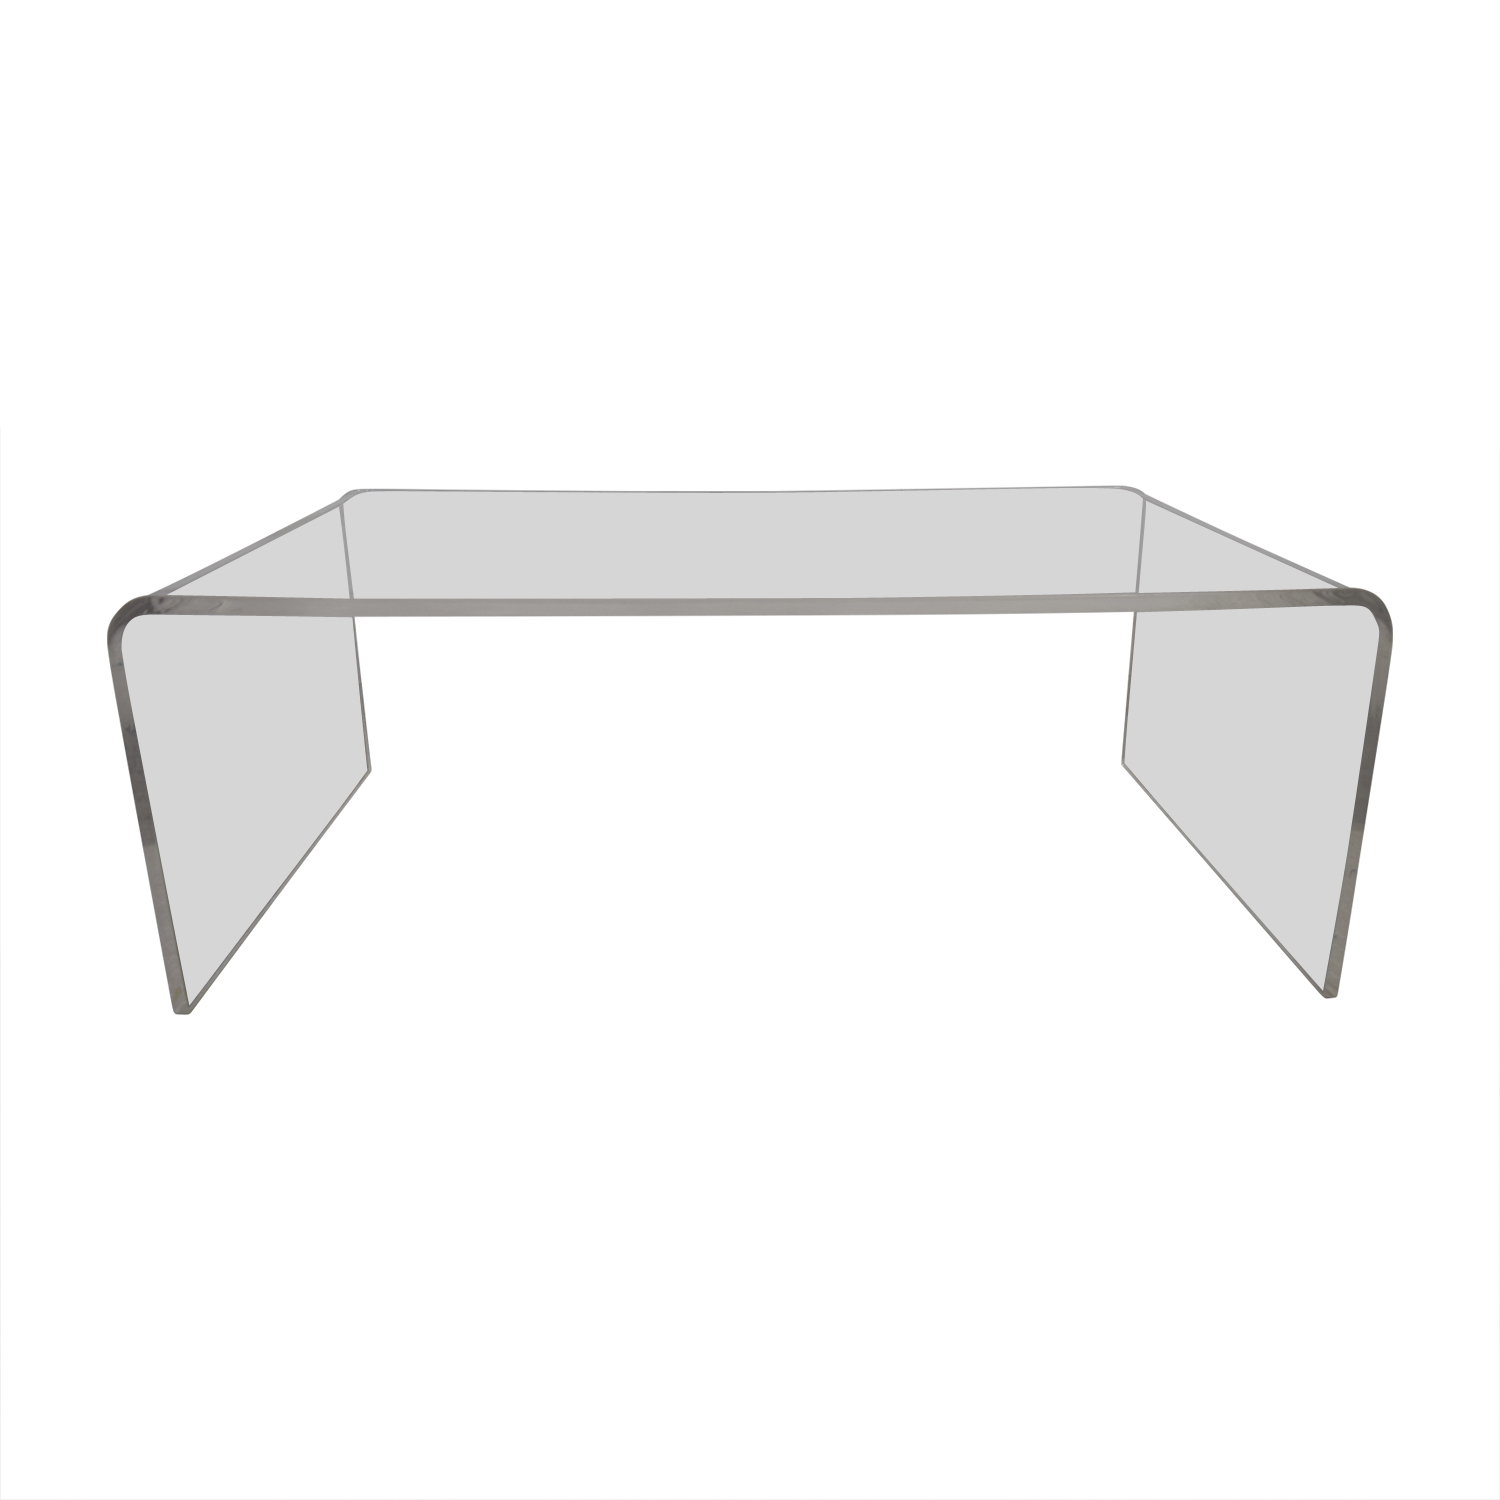 OFF CB CB Peekaboo Acrylic Ghost Tall Coffee Table Tables - Cb2 peekaboo coffee table